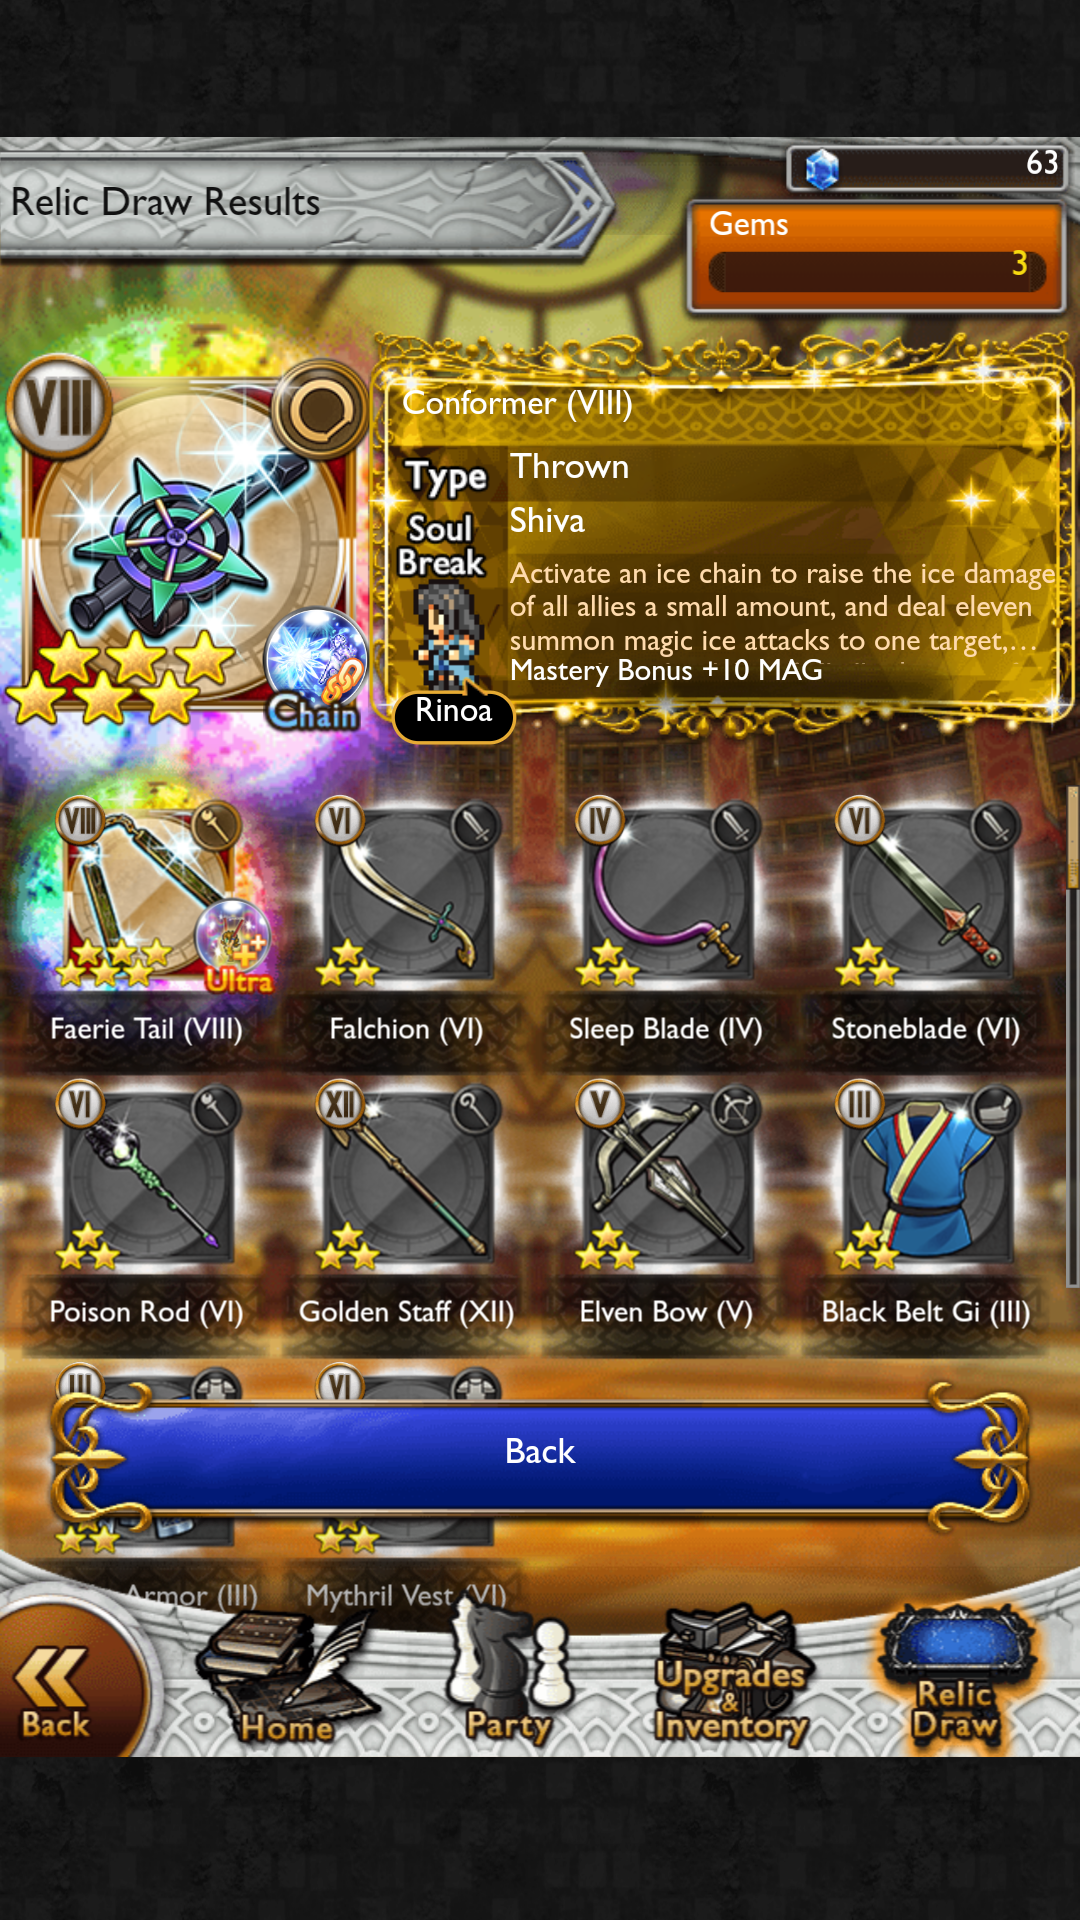 kirin games dupe that daily have rosetta from eiko thread down four more dorp left draws huge wasnt rata this been woulda relics said just sure jinxed today raines edit almost decent something pull usb1 faris dupes pulled wish morning rianes ffxiii also parade noctis ffxv machina ffxiv because tally ffxii vaan